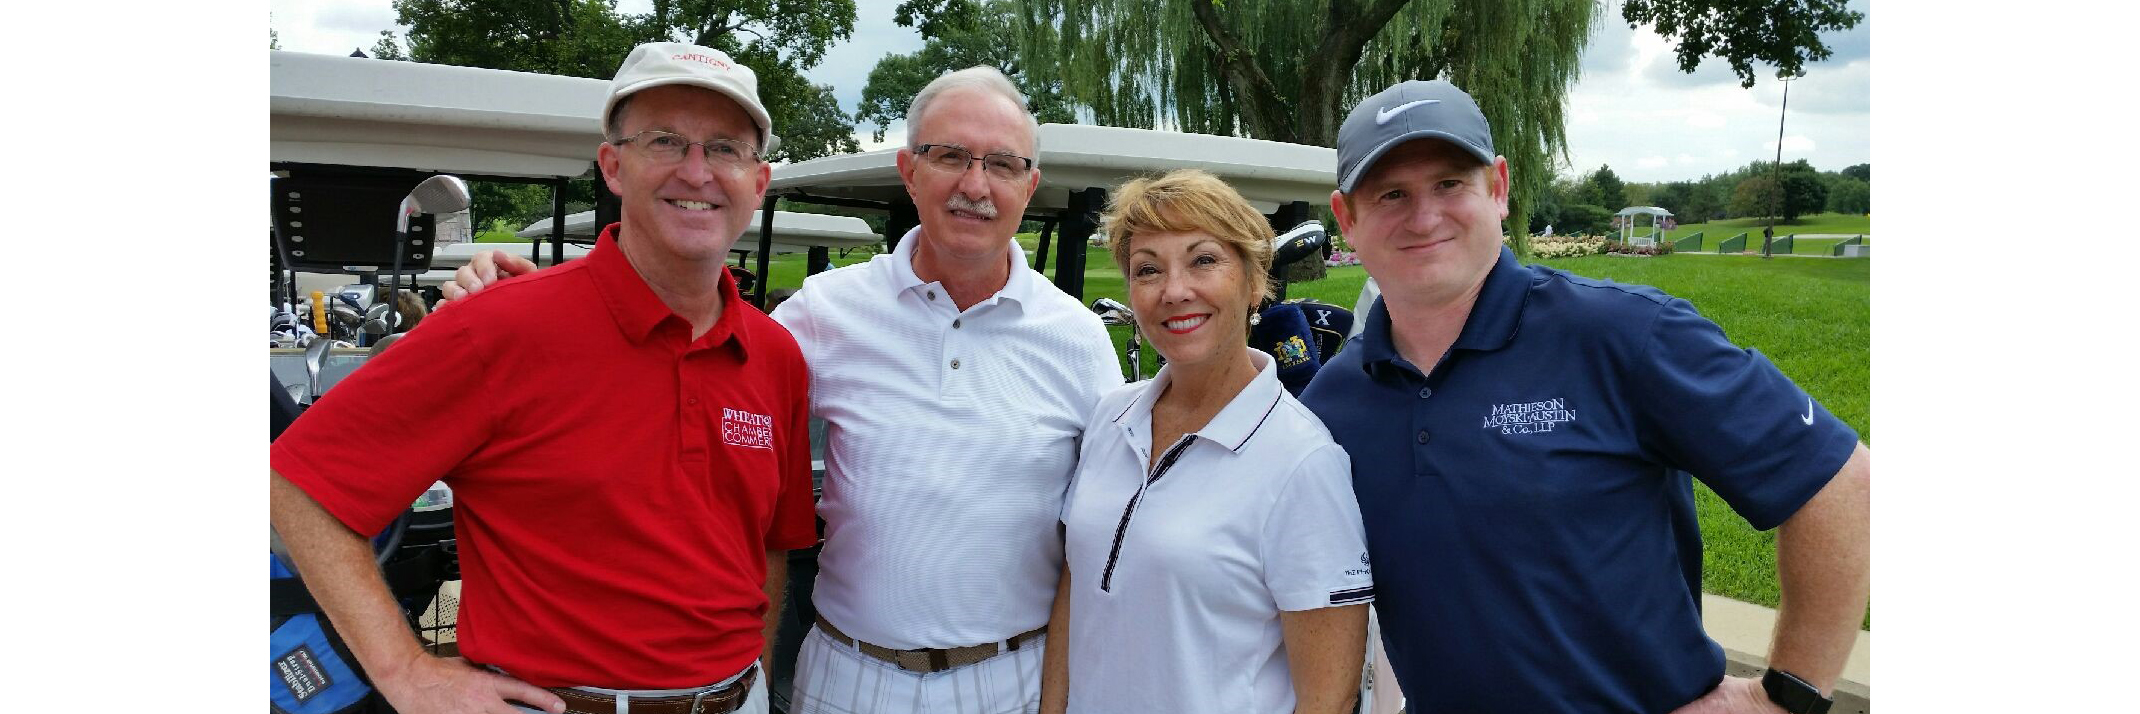 Cosley-Zoo-Golf-Outing-gallery-pic1.jpg